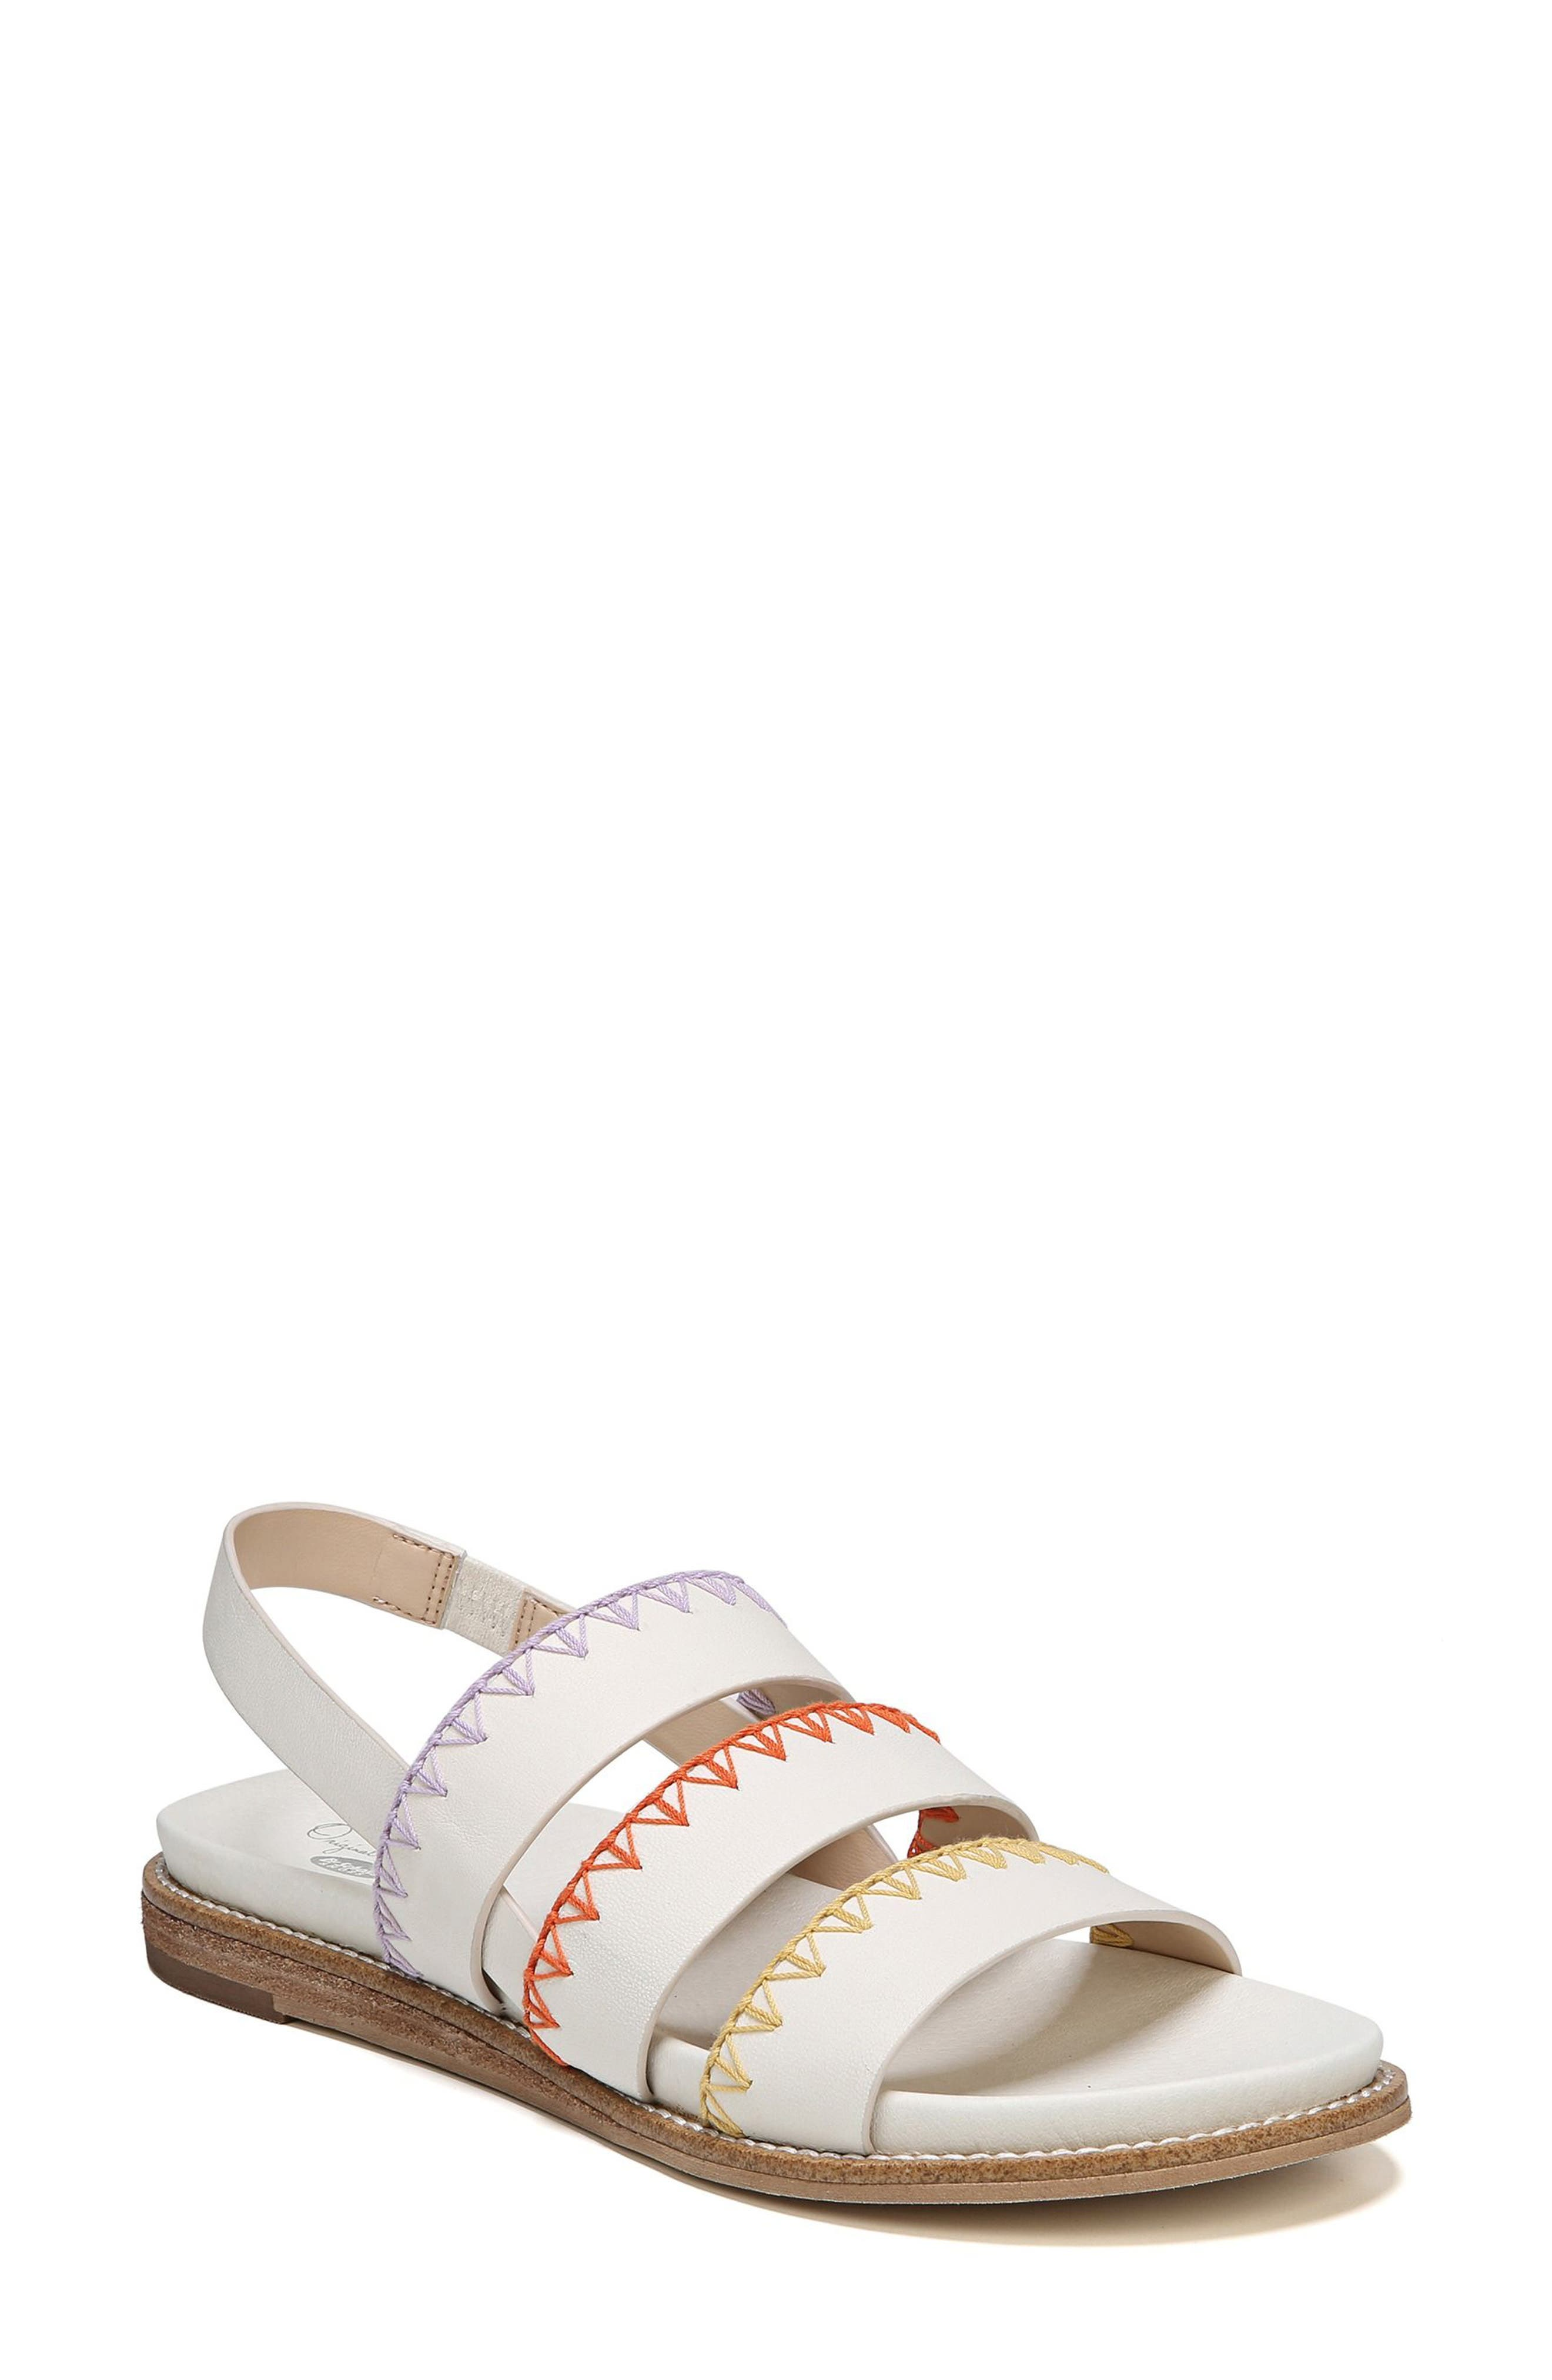 Discover Sandal,                             Main thumbnail 1, color,                             Marshmallow Leather